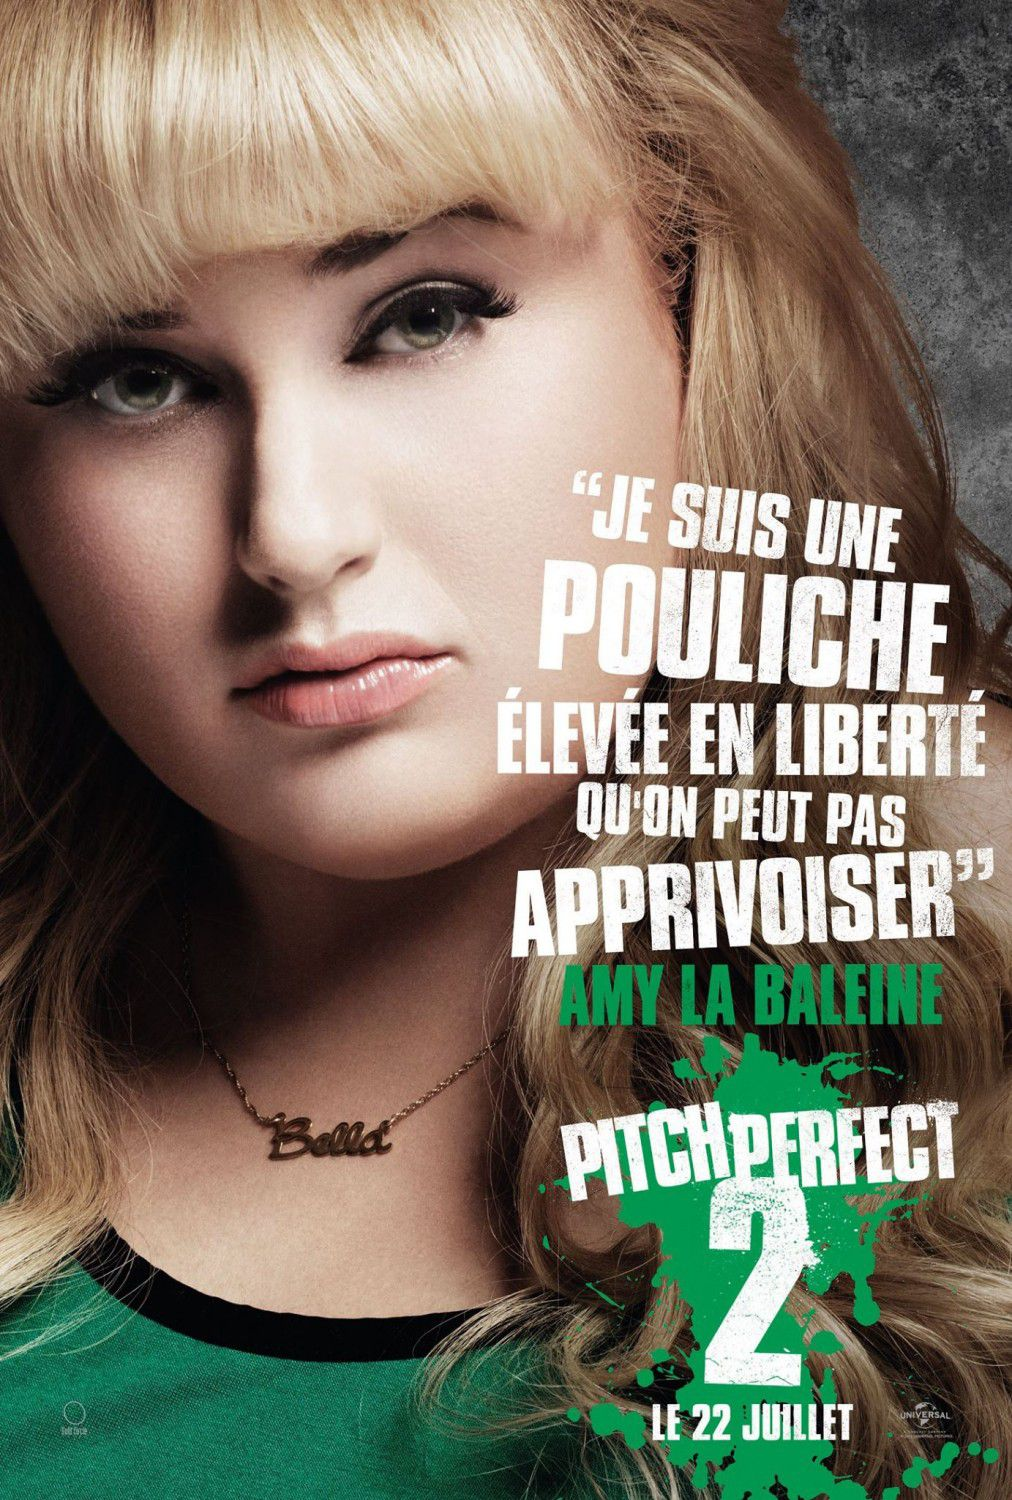 Pitch Perfect 2 - Voices 2 - Amy